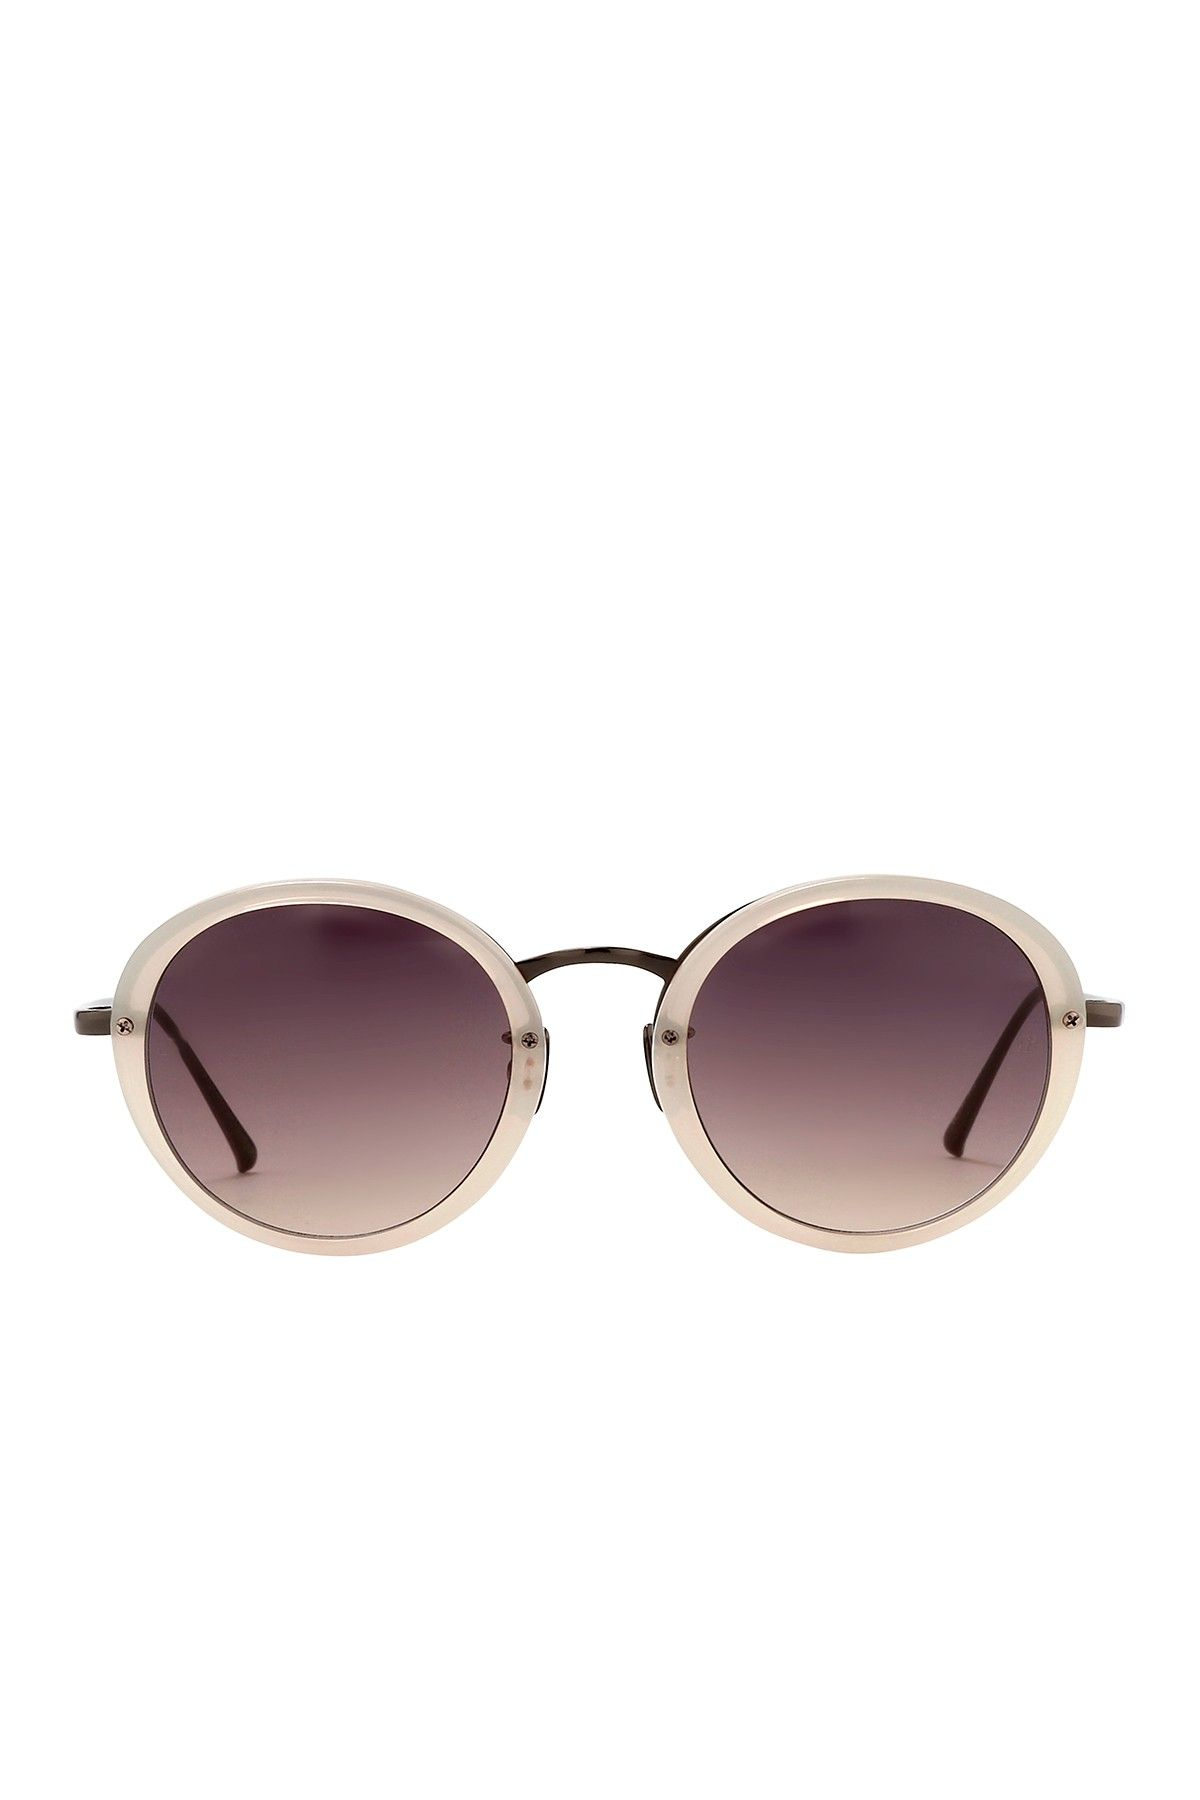 38605bd5d48f Linda Farrow - Women s Purple Acetate Sunglasses at Nordstrom Rack. Free  Shipping on orders over  100.